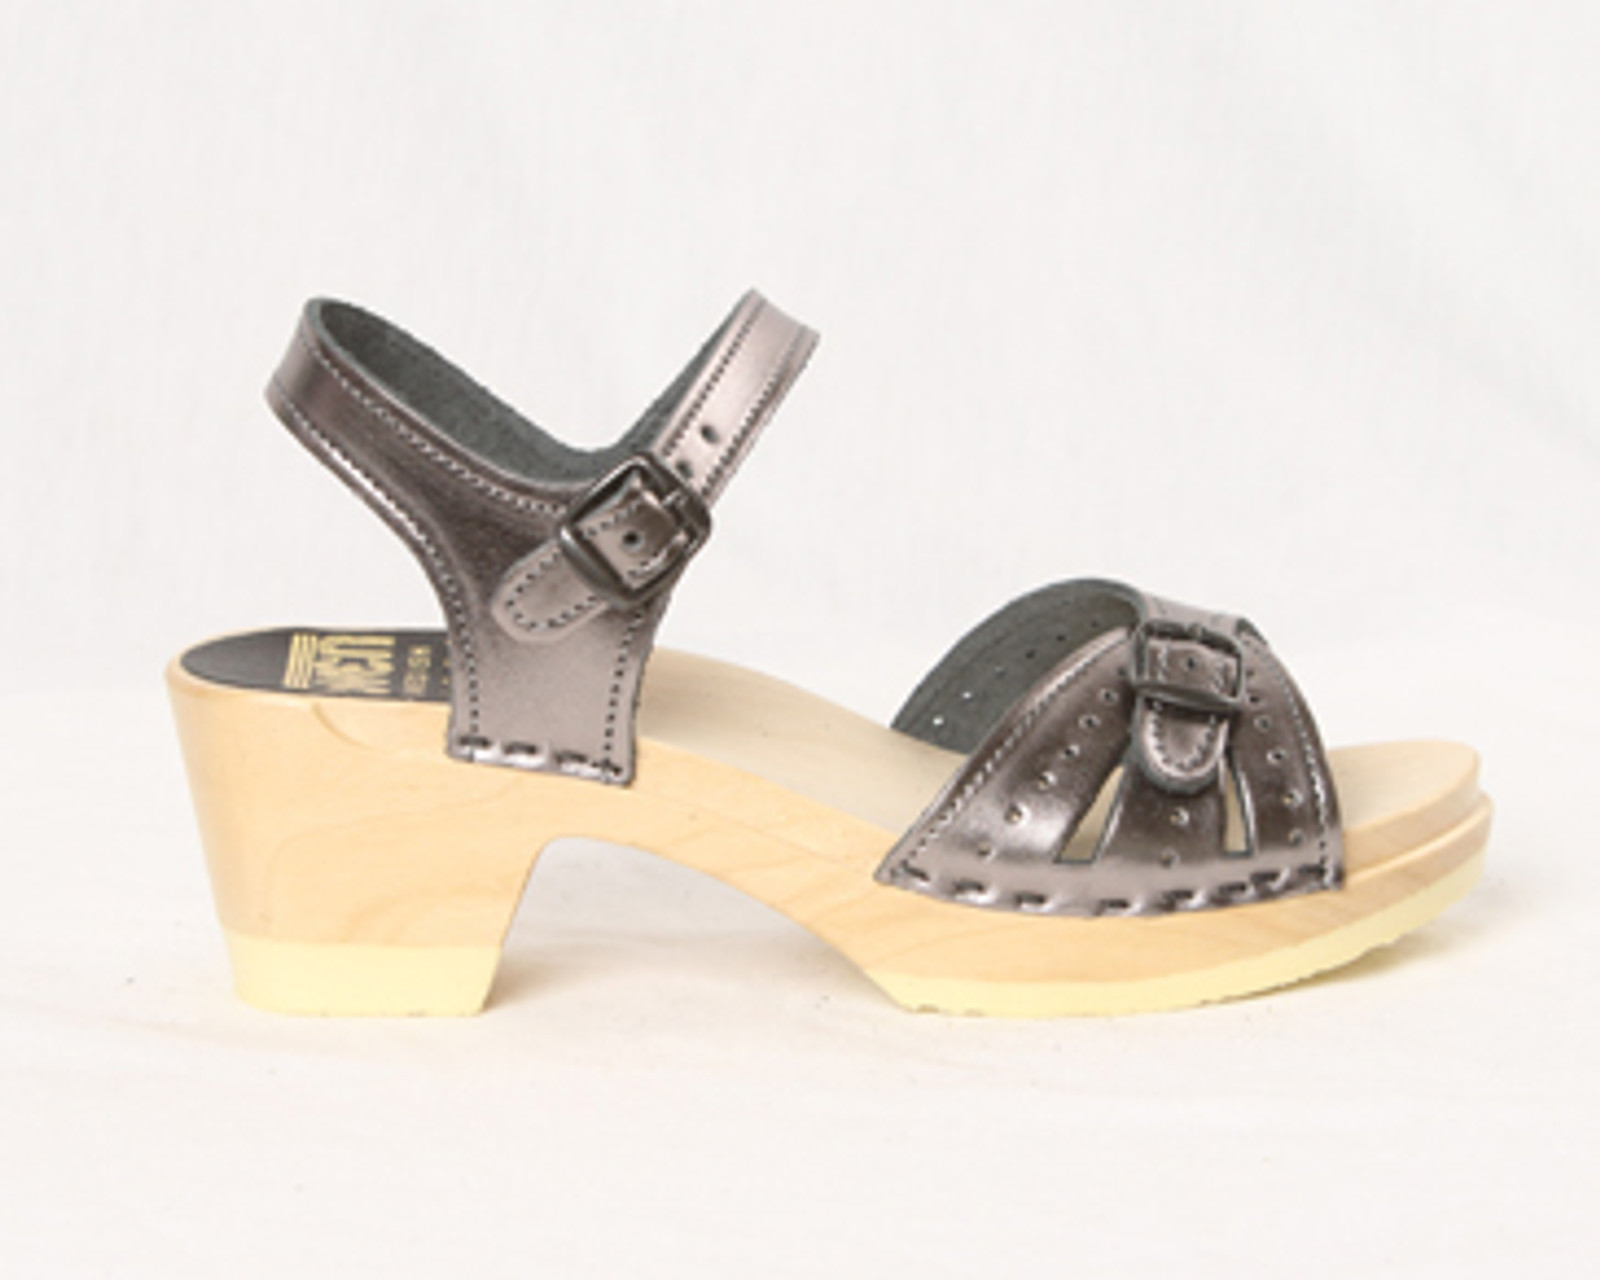 2 Buckle Sandals - Mid Bendable